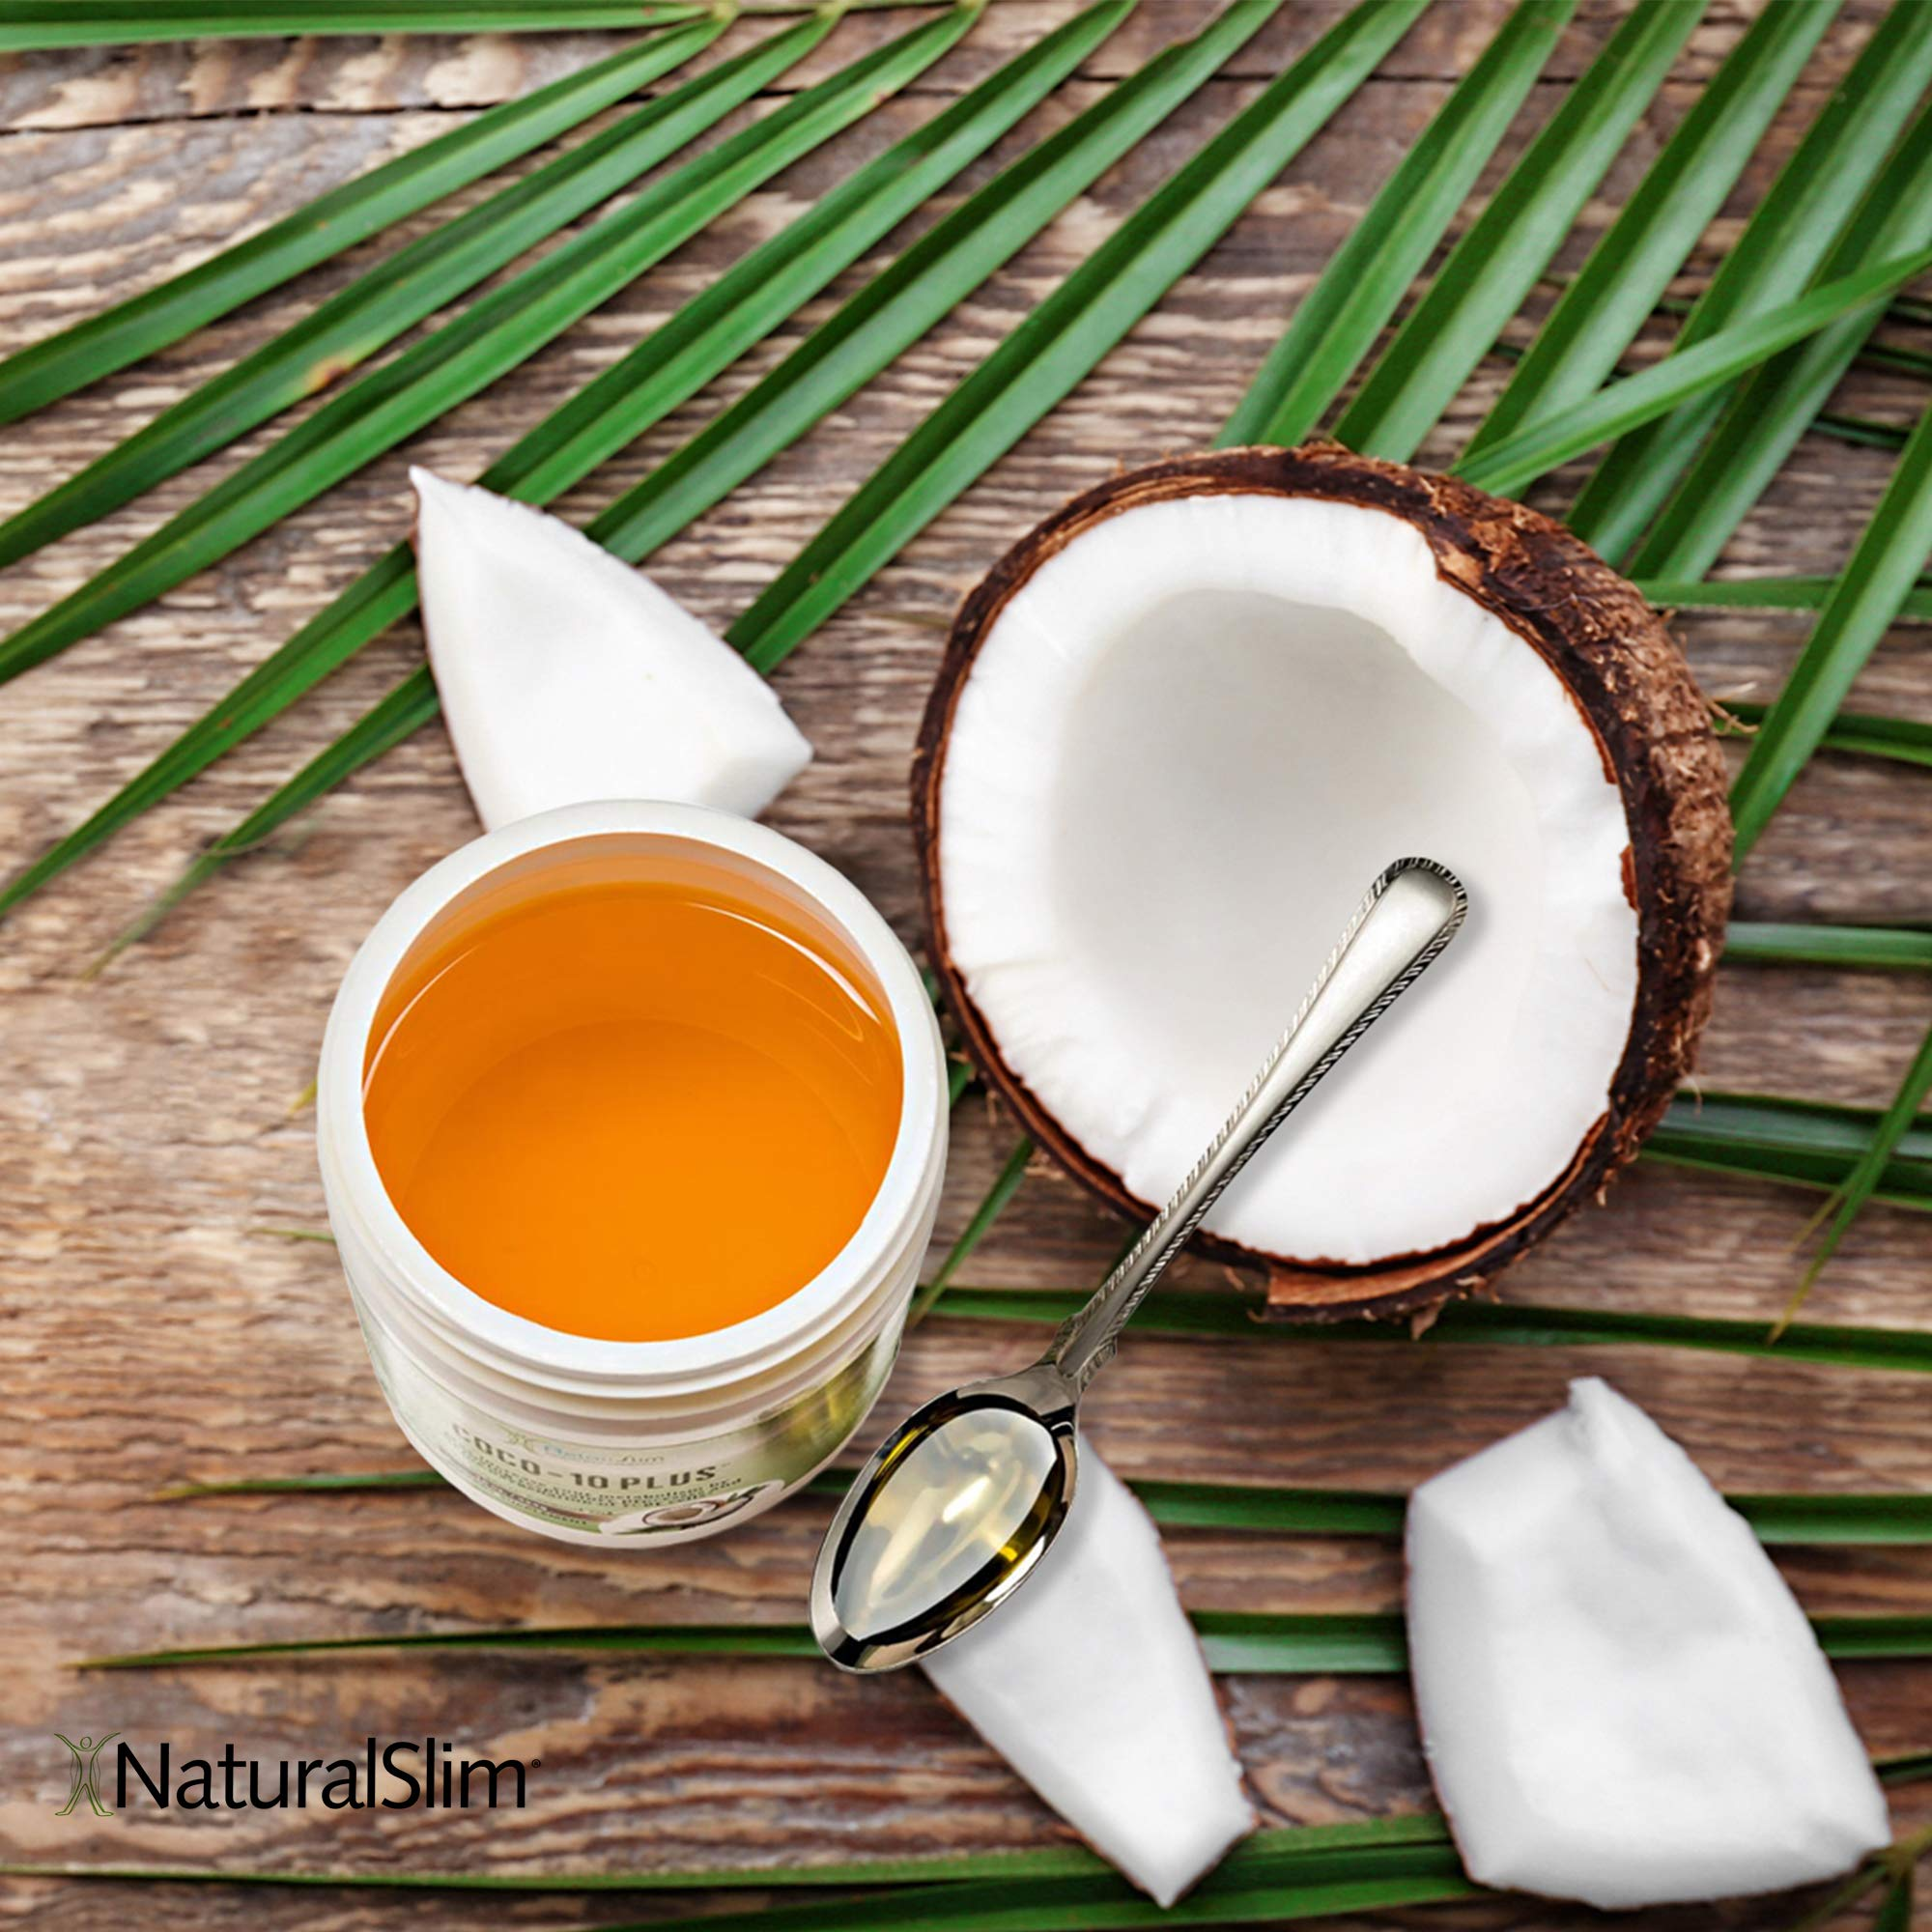 NaturalSlim''Super'' Organic Coconut Oil with CoQ10, Formulated by Obesity and Metabolism Specialist to Improve Energy Levels and Assist with Weight Loss - Natural Fat Burner to Any Diet Attempt 16 Oz by RelaxSlim  (Image #5)